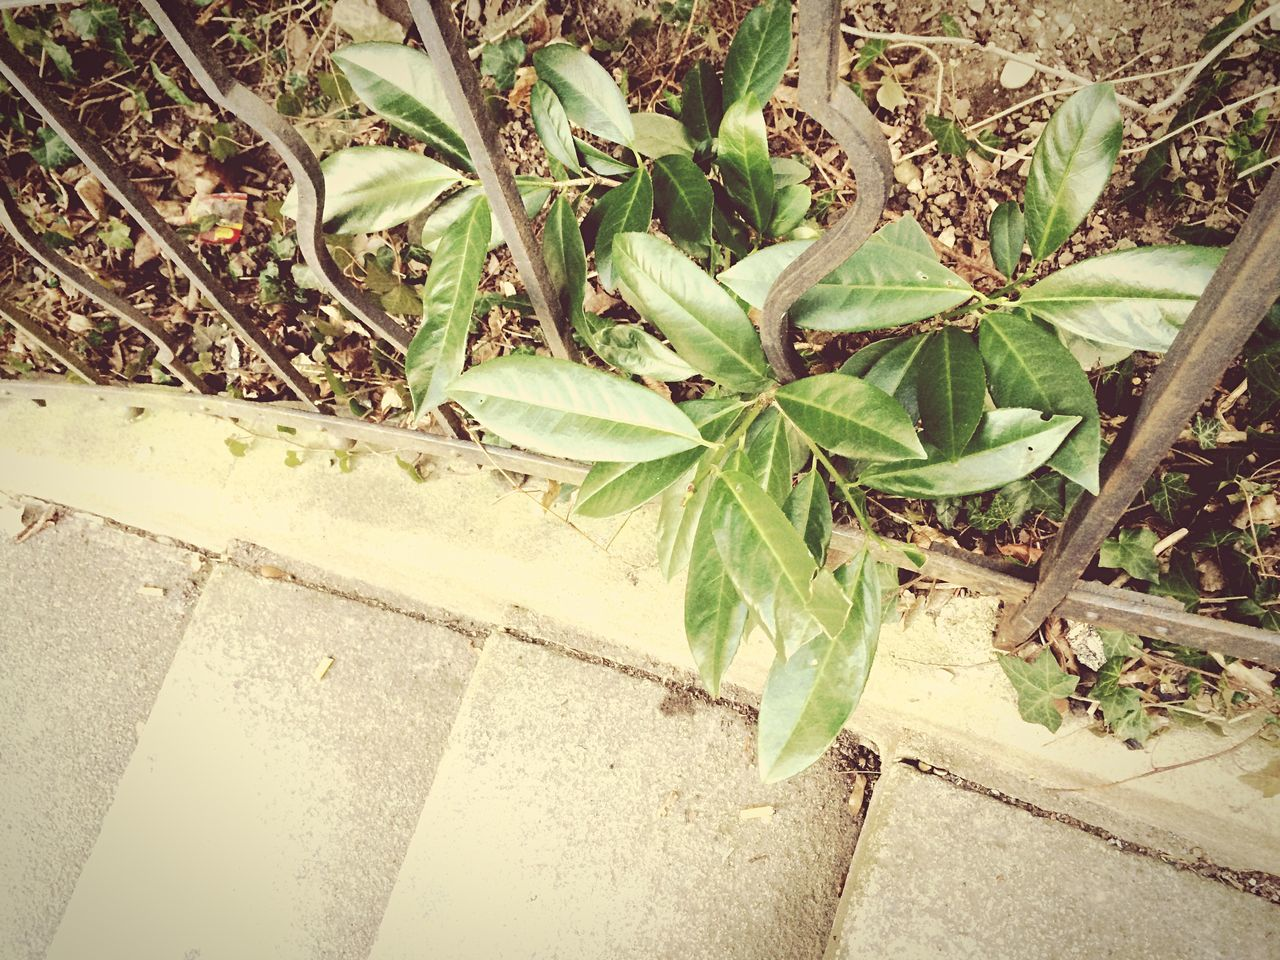 growth, leaf, plant, green color, high angle view, no people, day, outdoors, nature, close-up, freshness